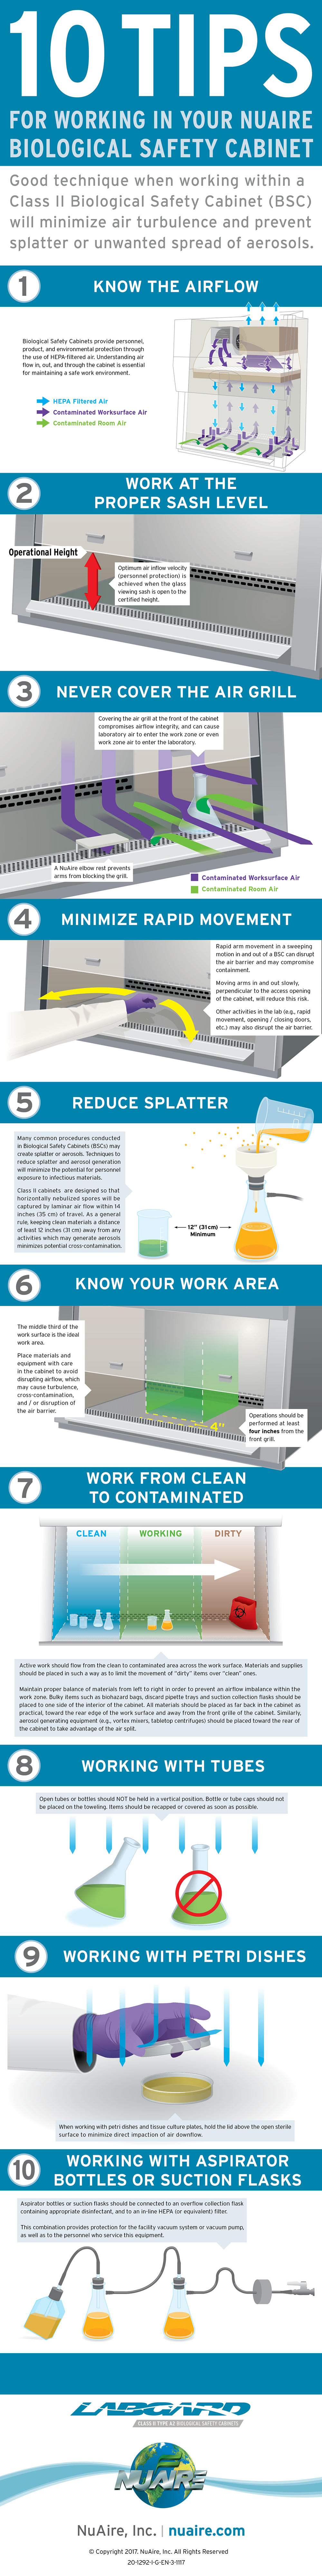 10 Tips for Working In Your NuAire Biosafety Cabinet